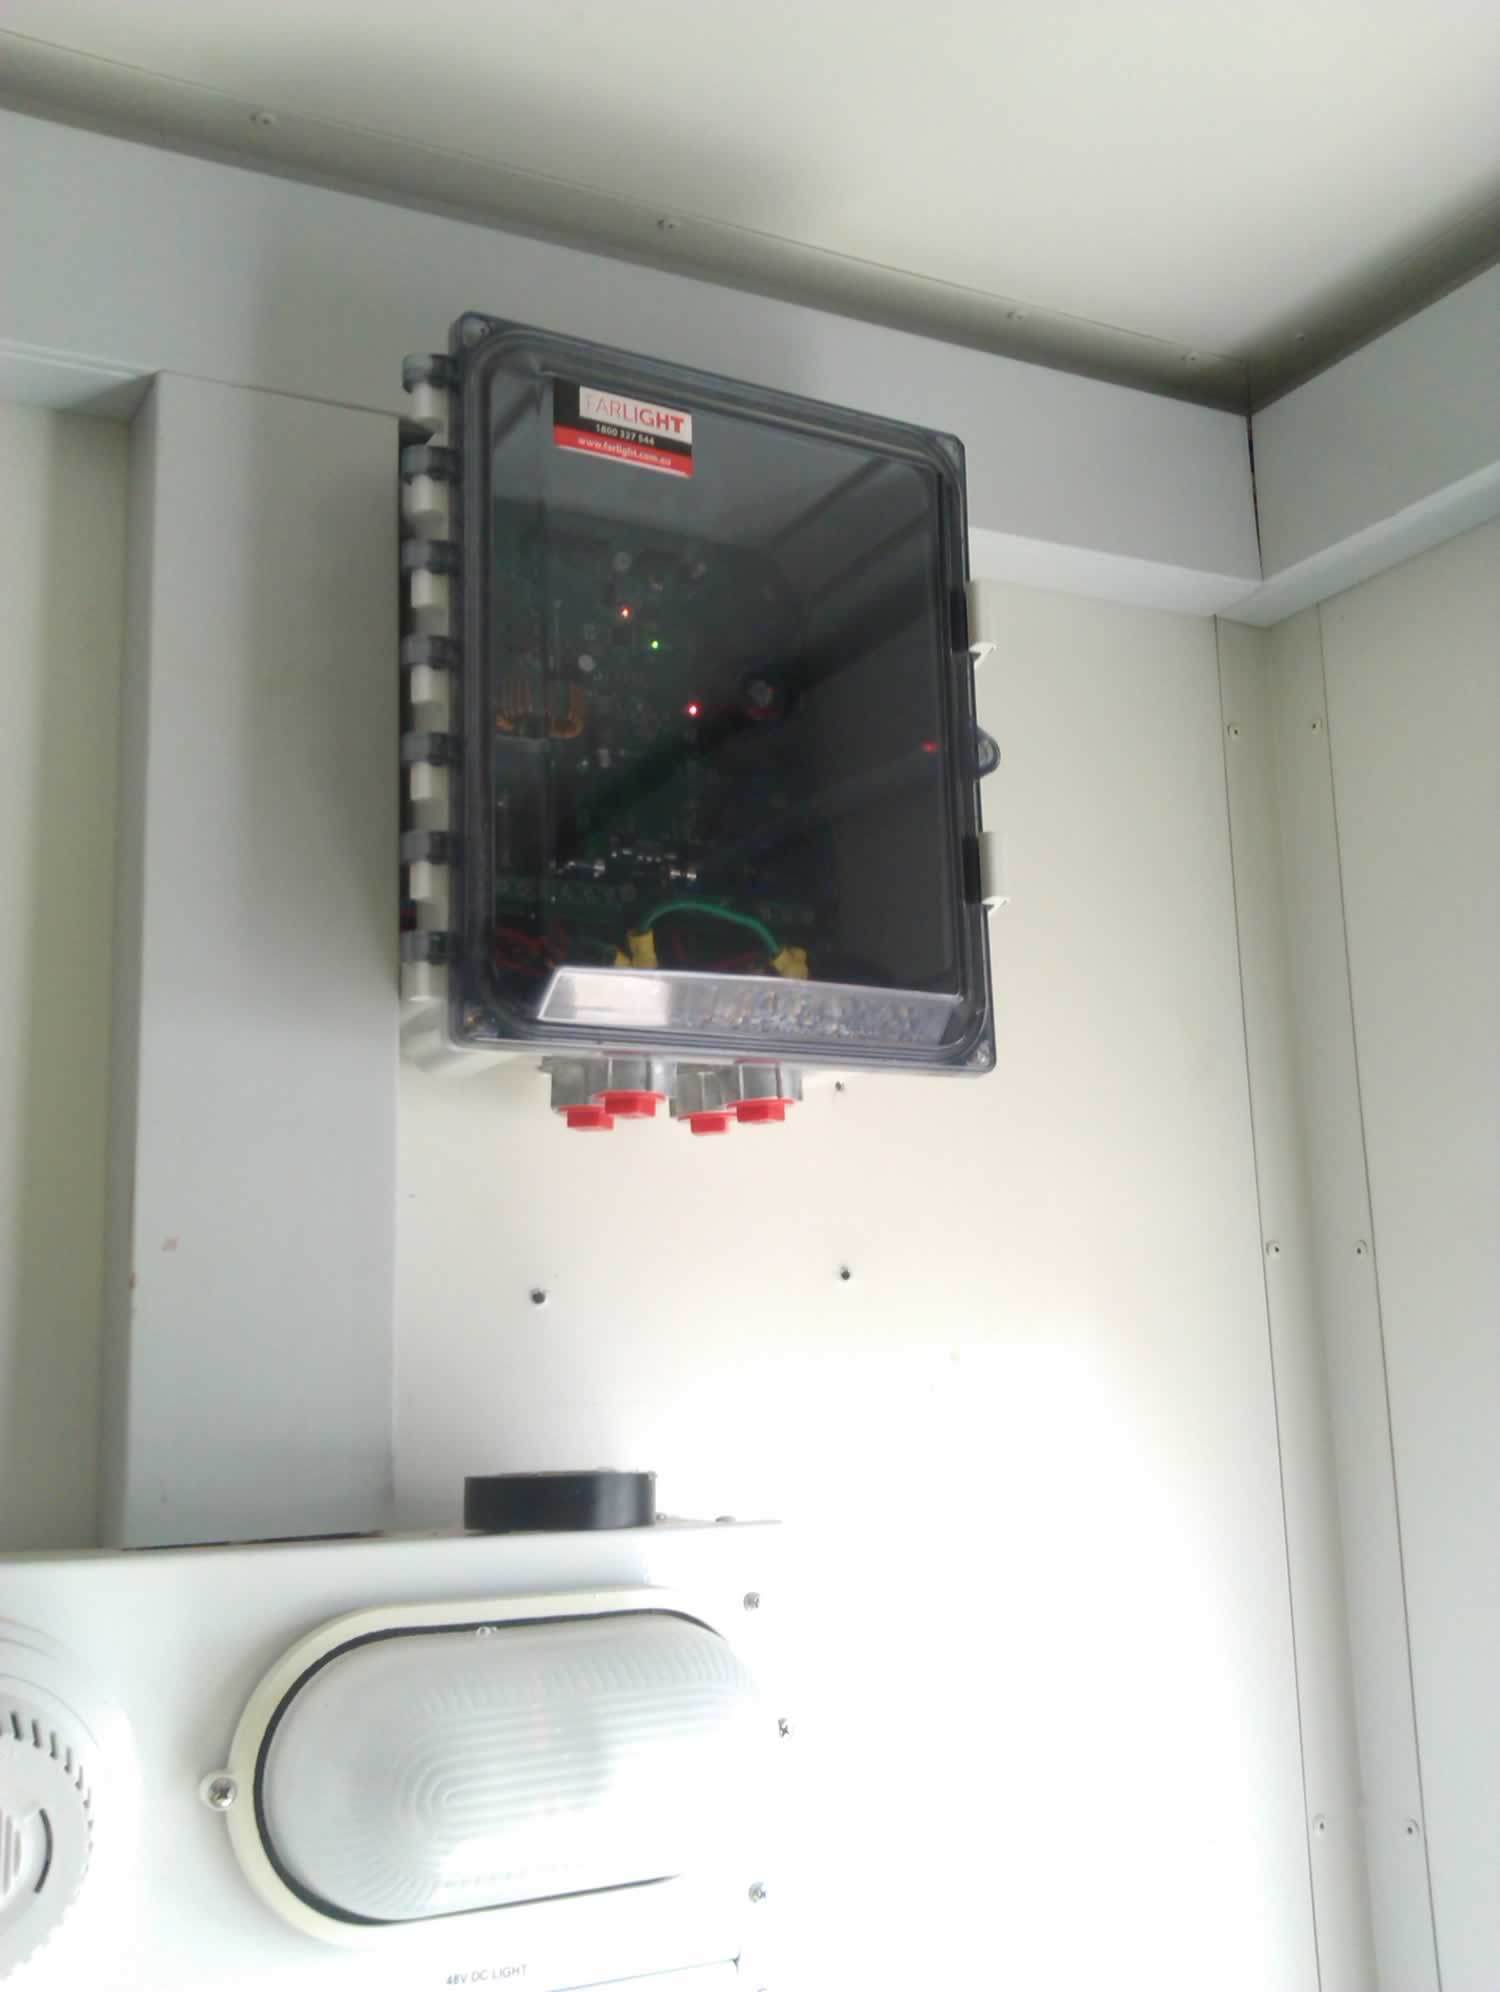 The NV-1000 installed by one of our contractors in NSW Australia.